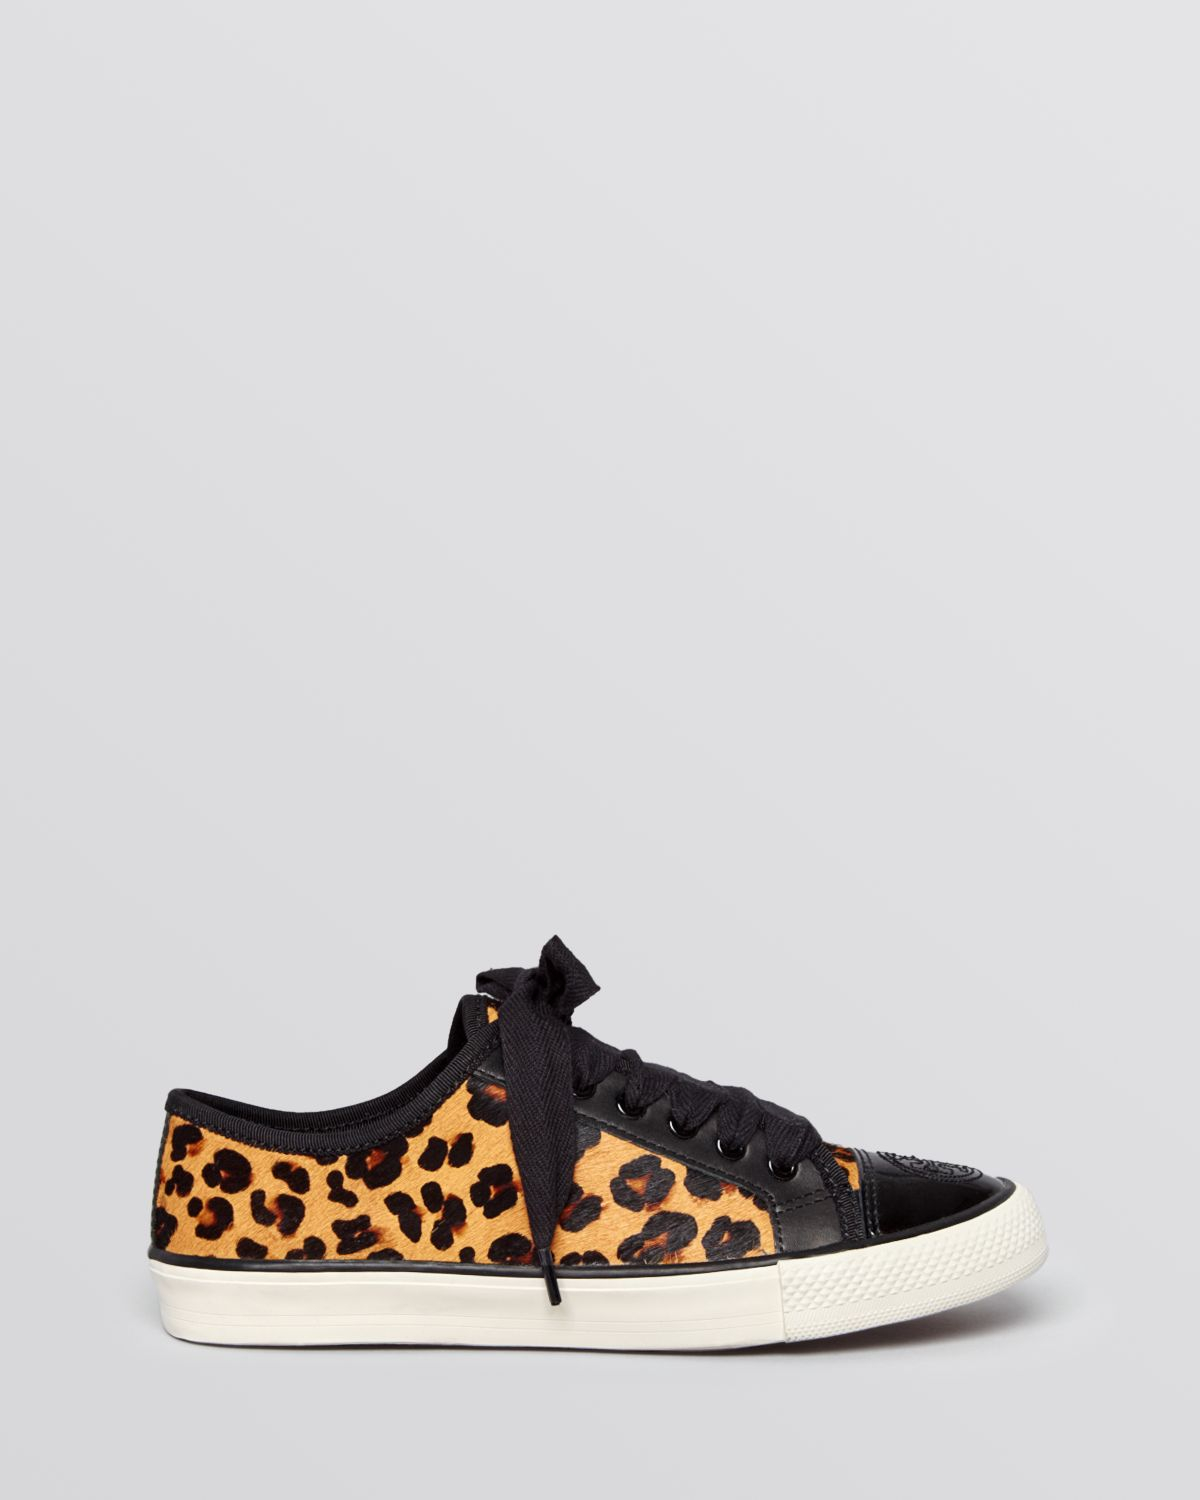 lowest price Tory Burch Printed Low-Top Sneakers purchase cheap online C1yMMn